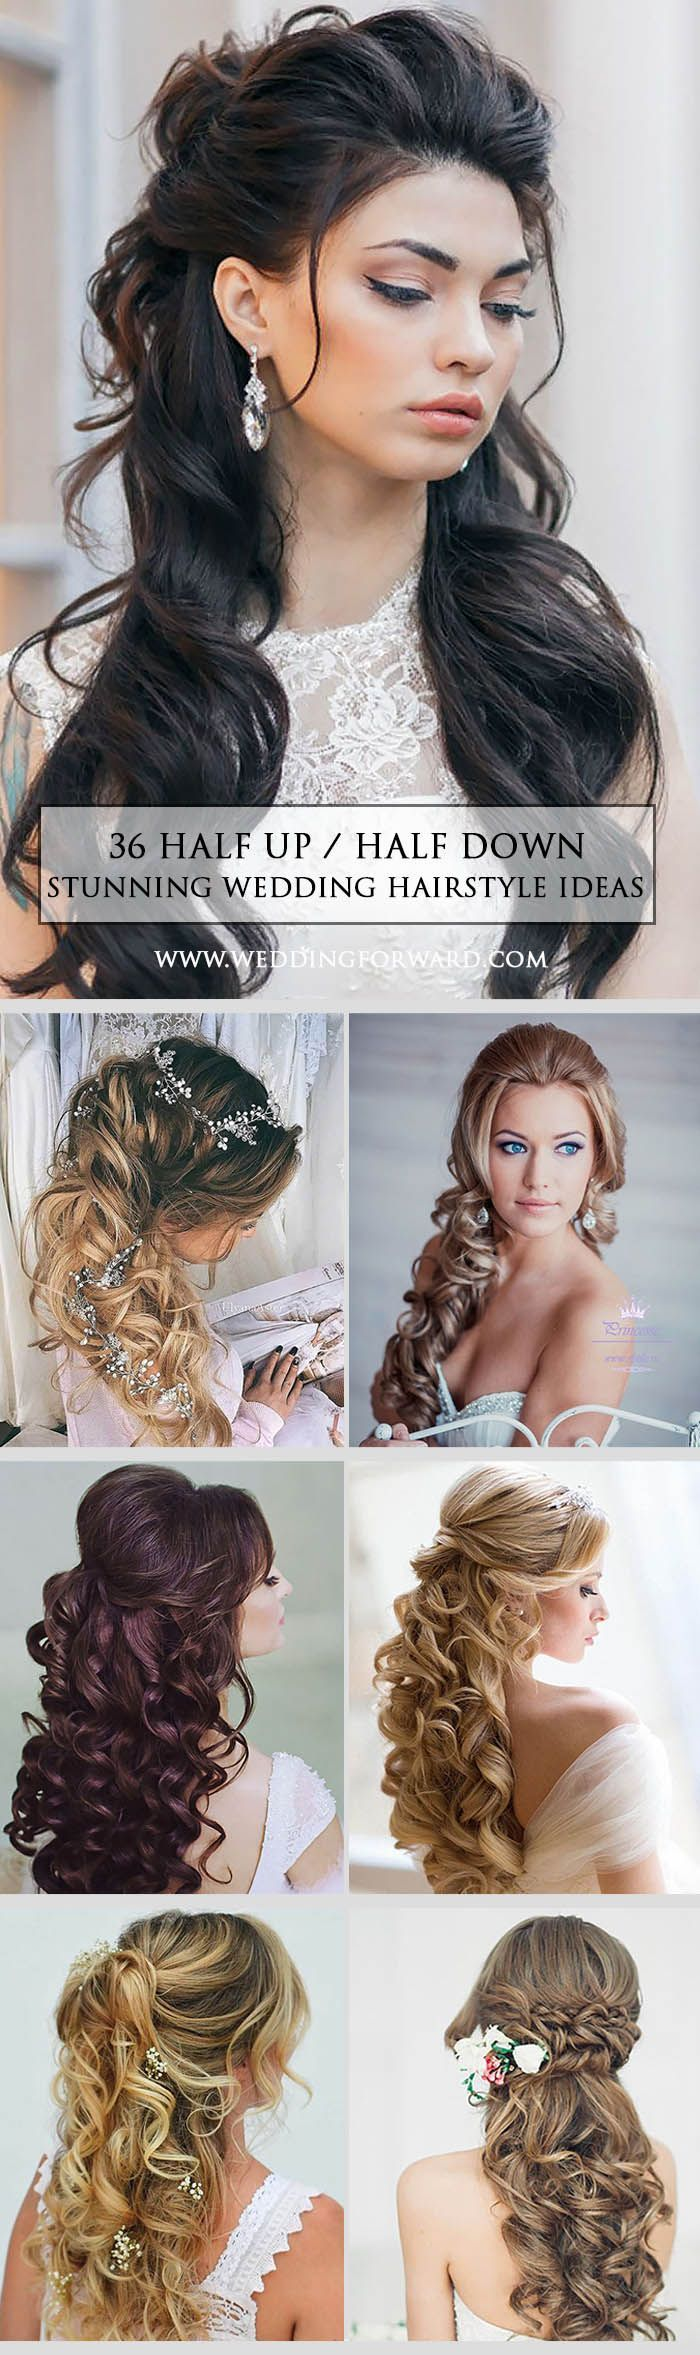 Affordable Celebrity Hair Accessories - Essence